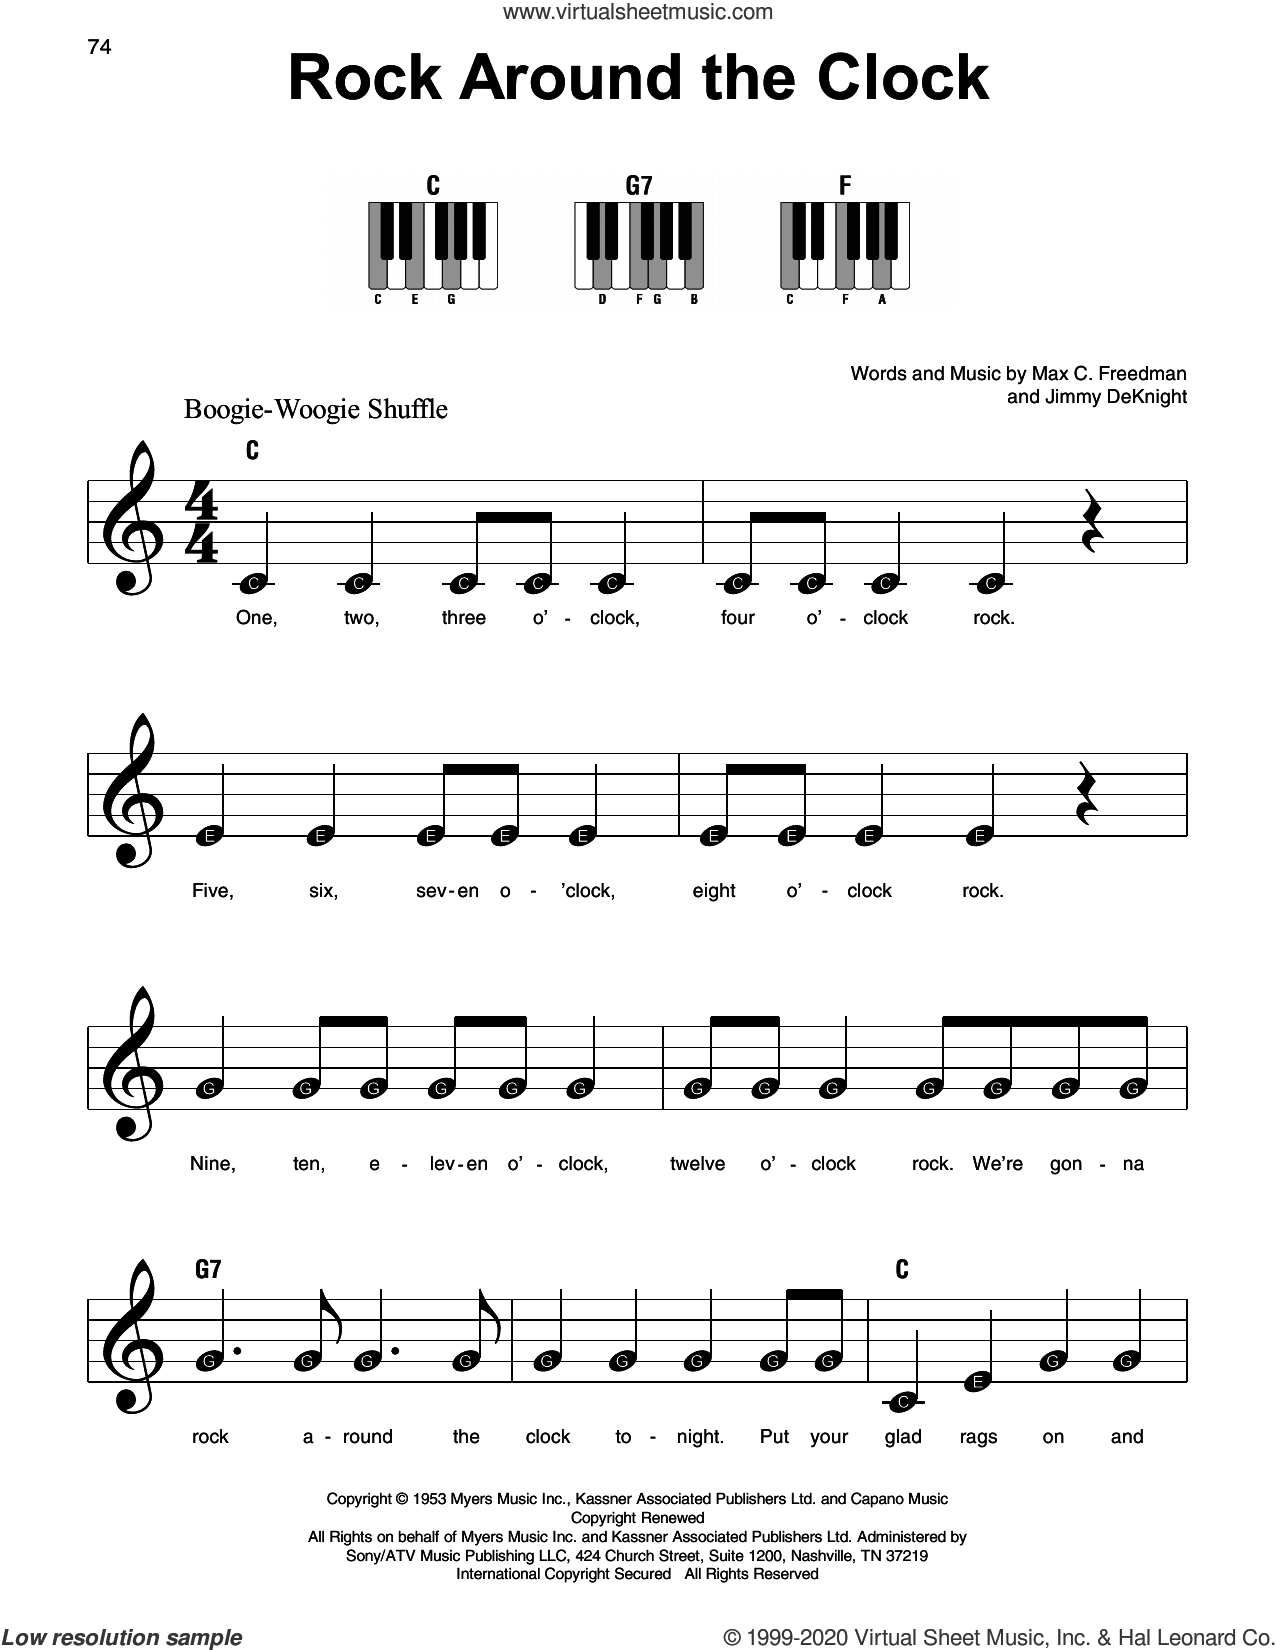 Rock Around The Clock sheet music for piano solo by Bill Haley & His Comets, Jimmy DeKnight and Max C. Freedman, beginner skill level